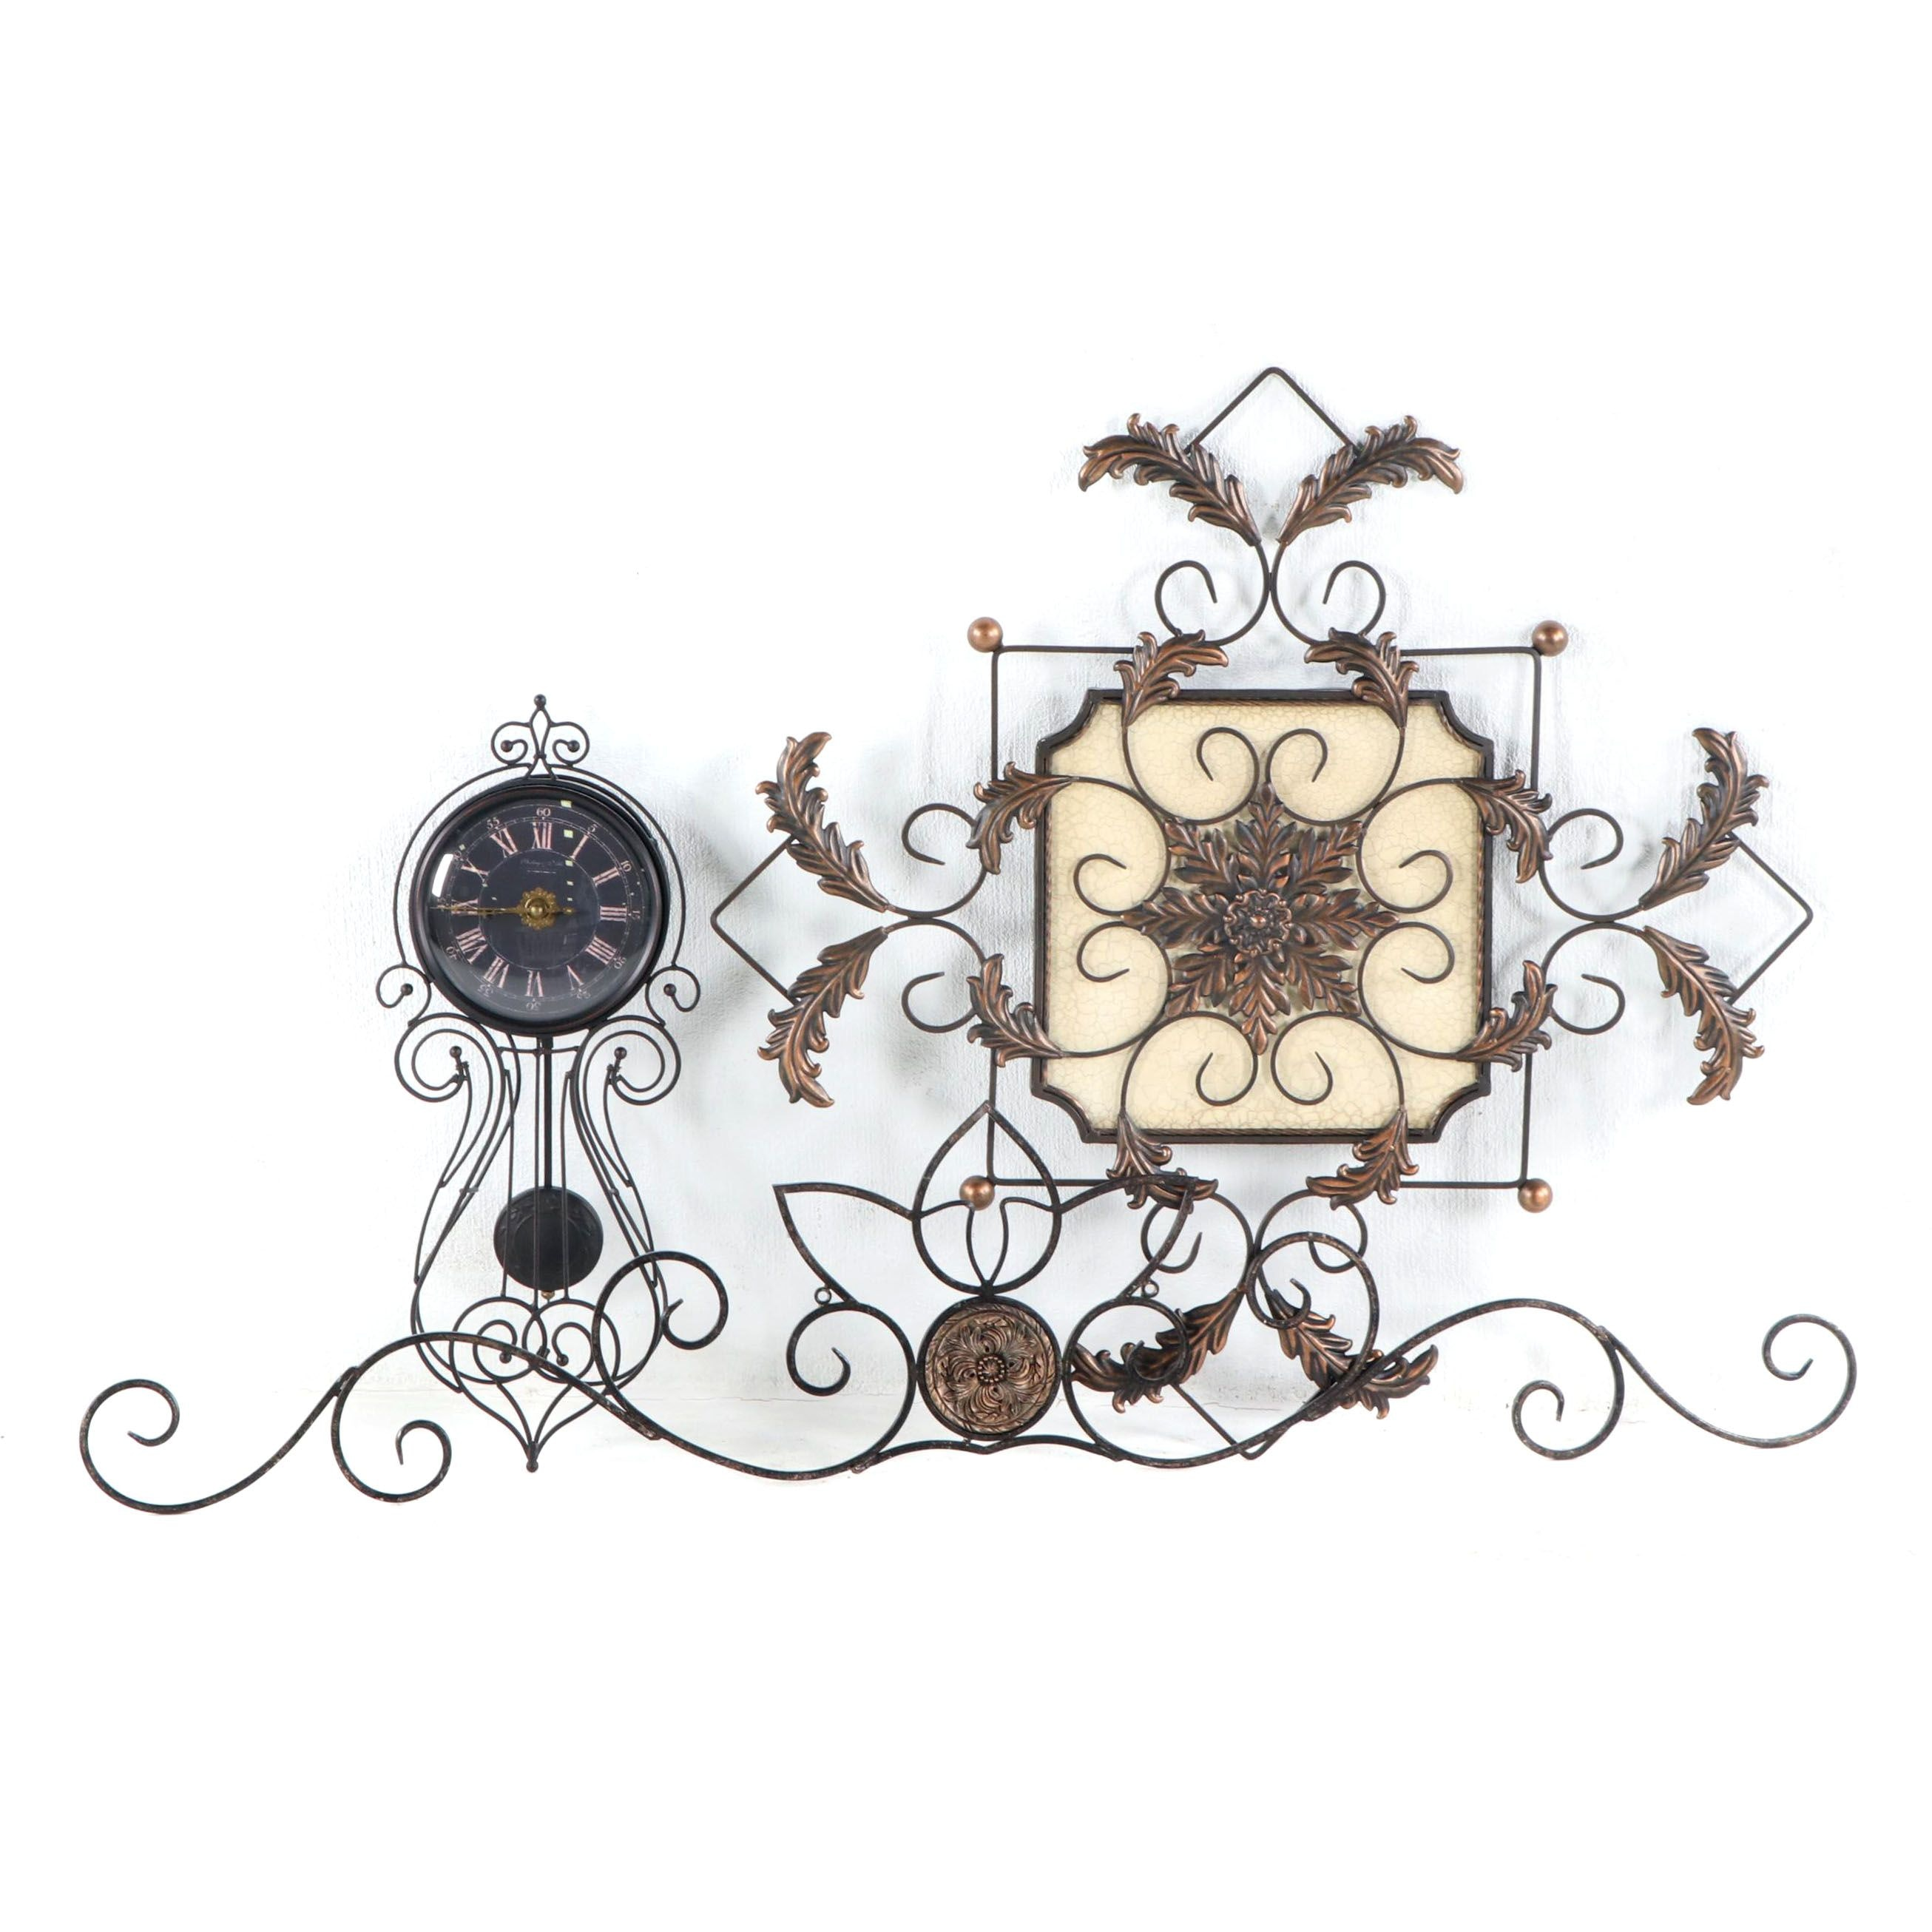 Sterling and Noble Decorative Wall Clock with Filigree Metal Wall Decor